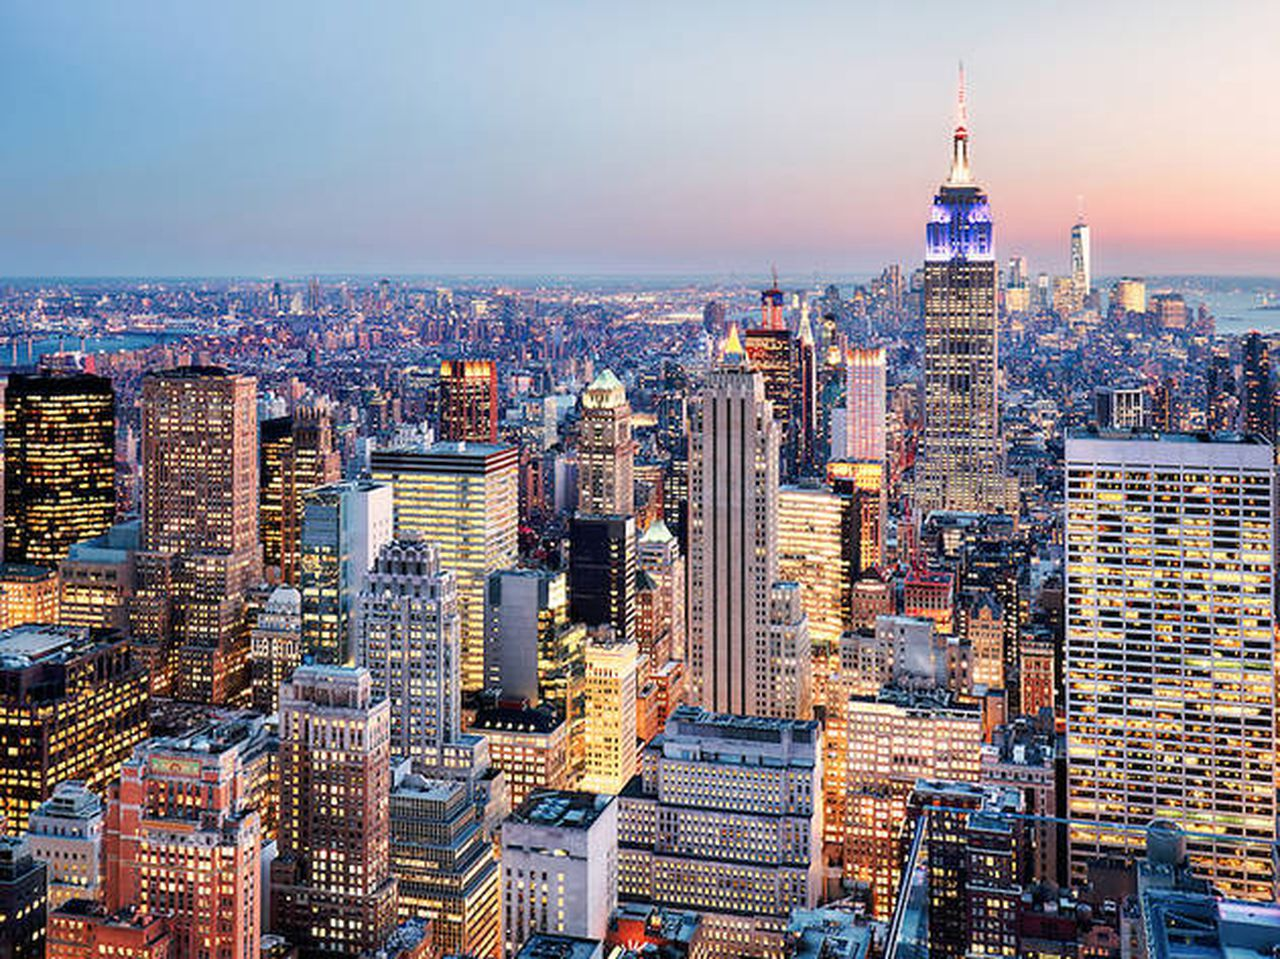 New York City tops the list of most valuable real estate cities in the US